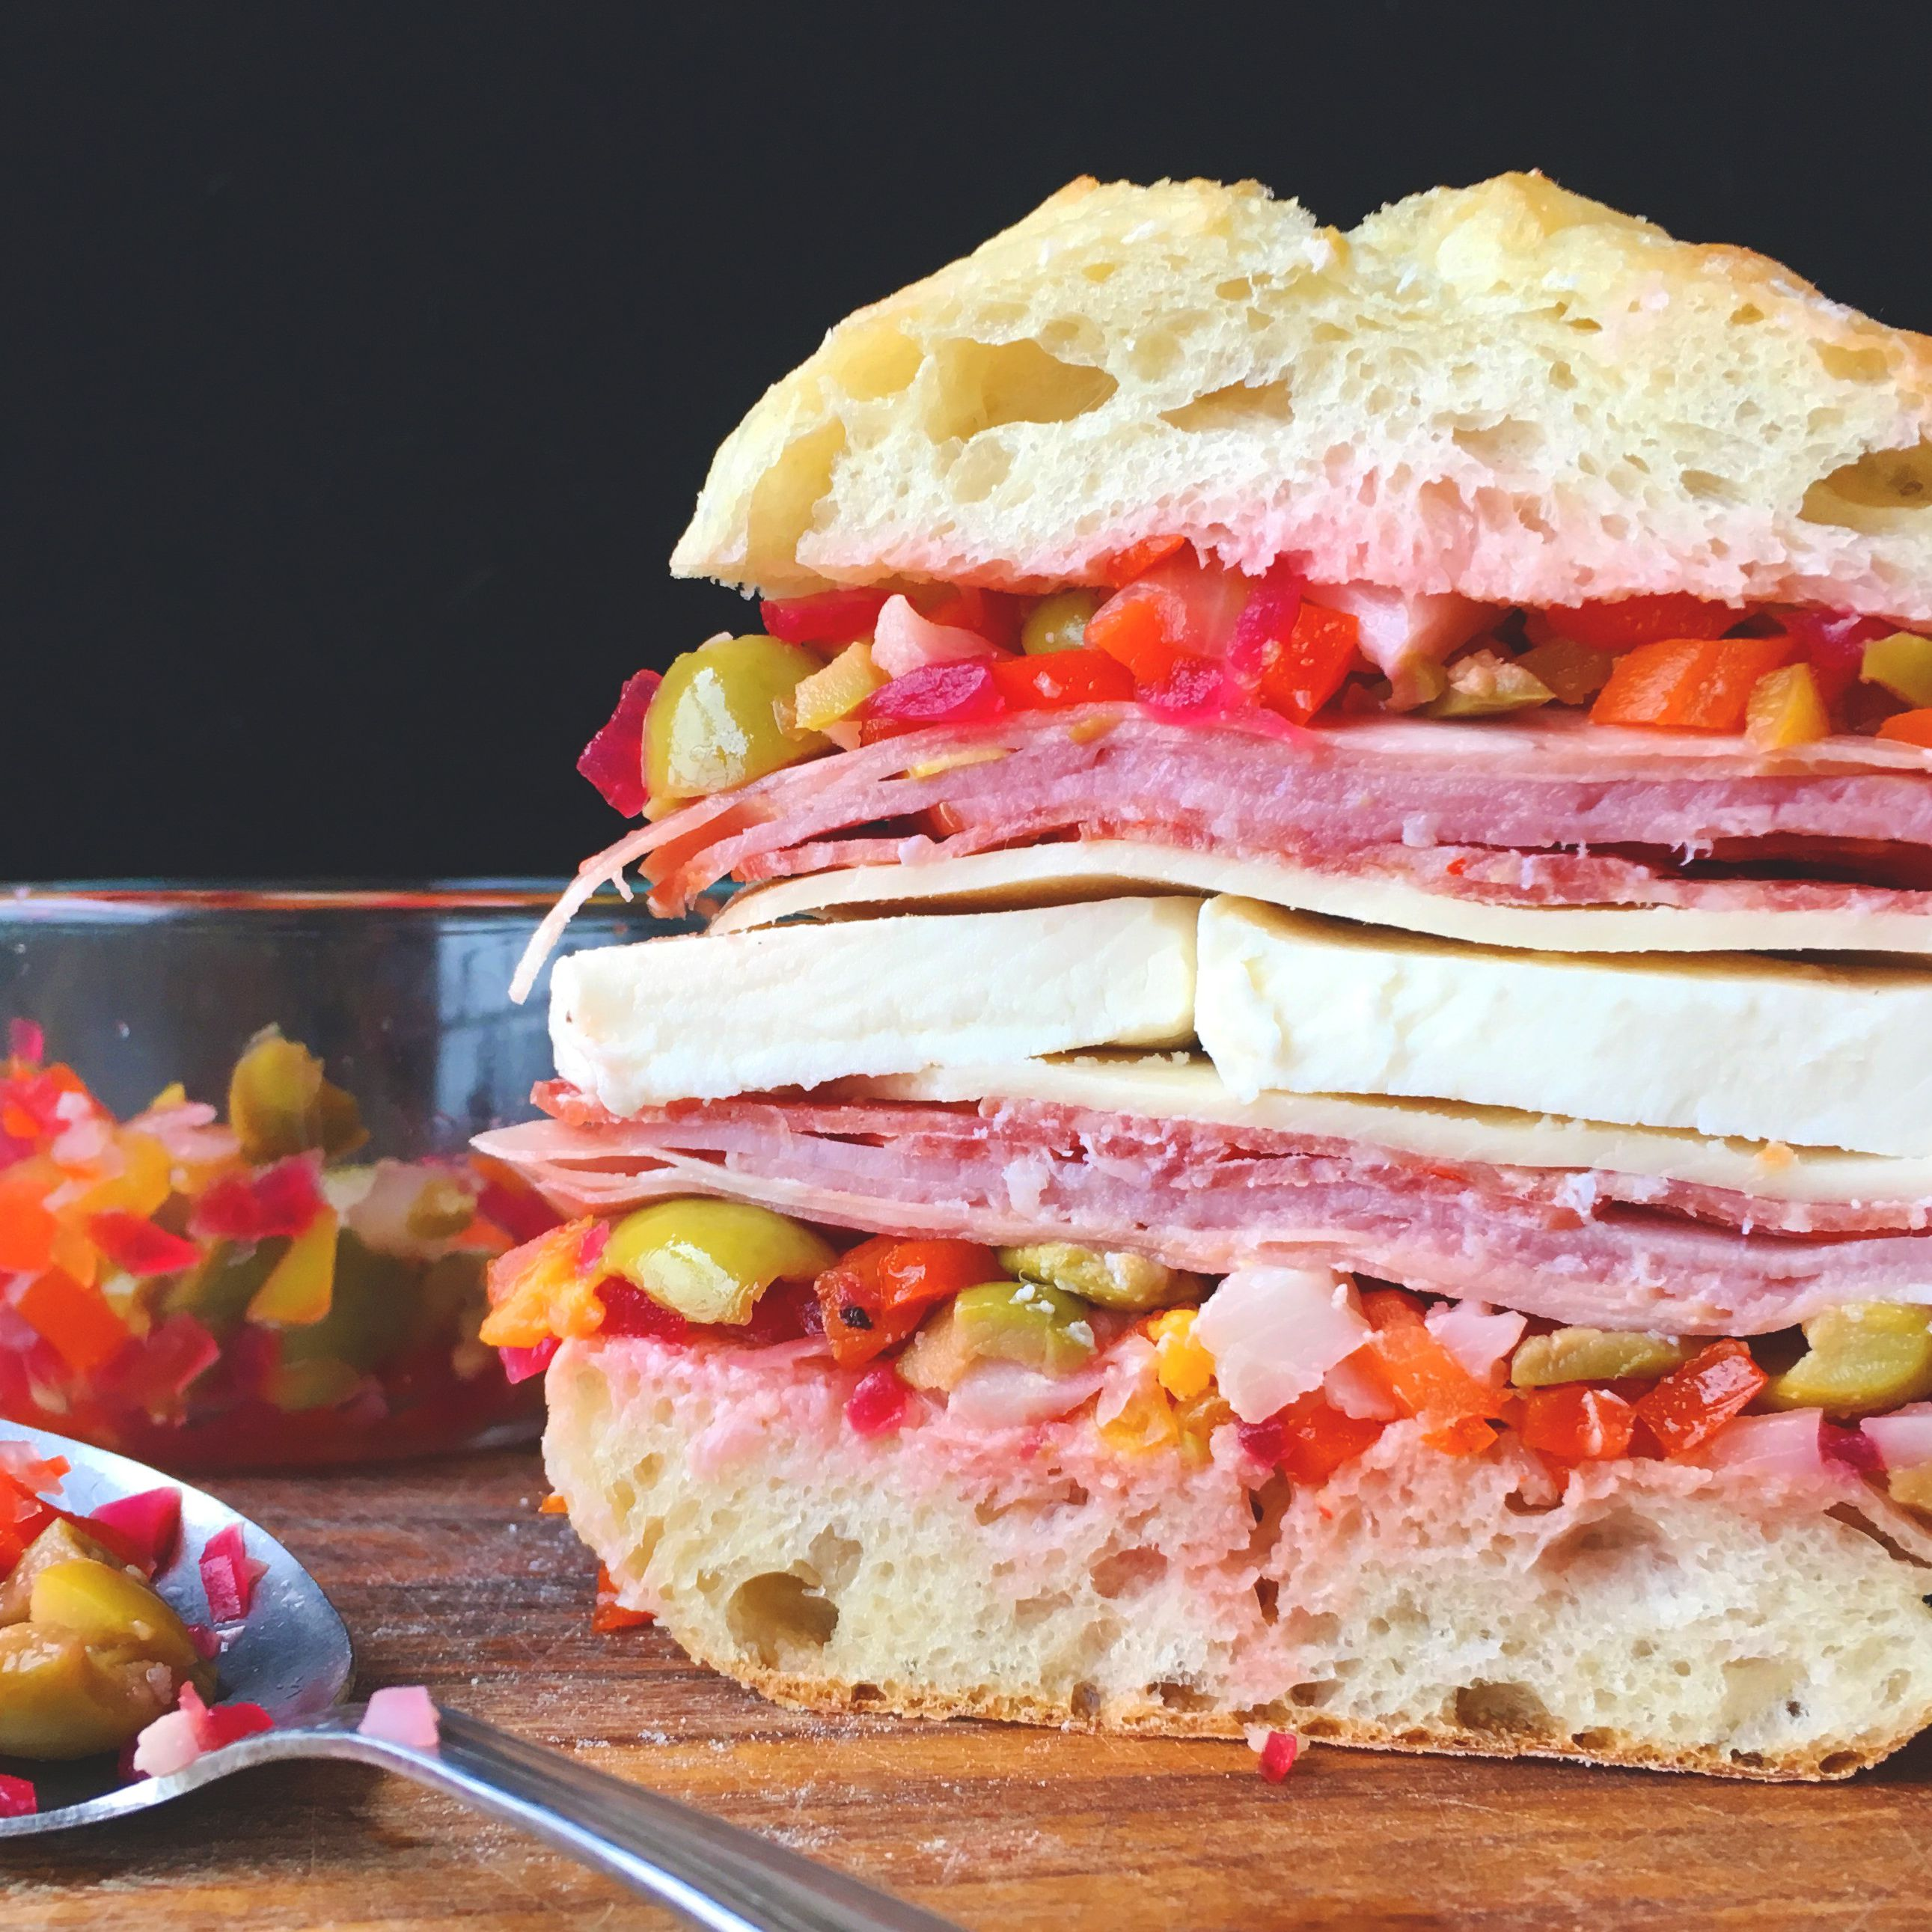 15 Creative Cold Sandwich Recipes